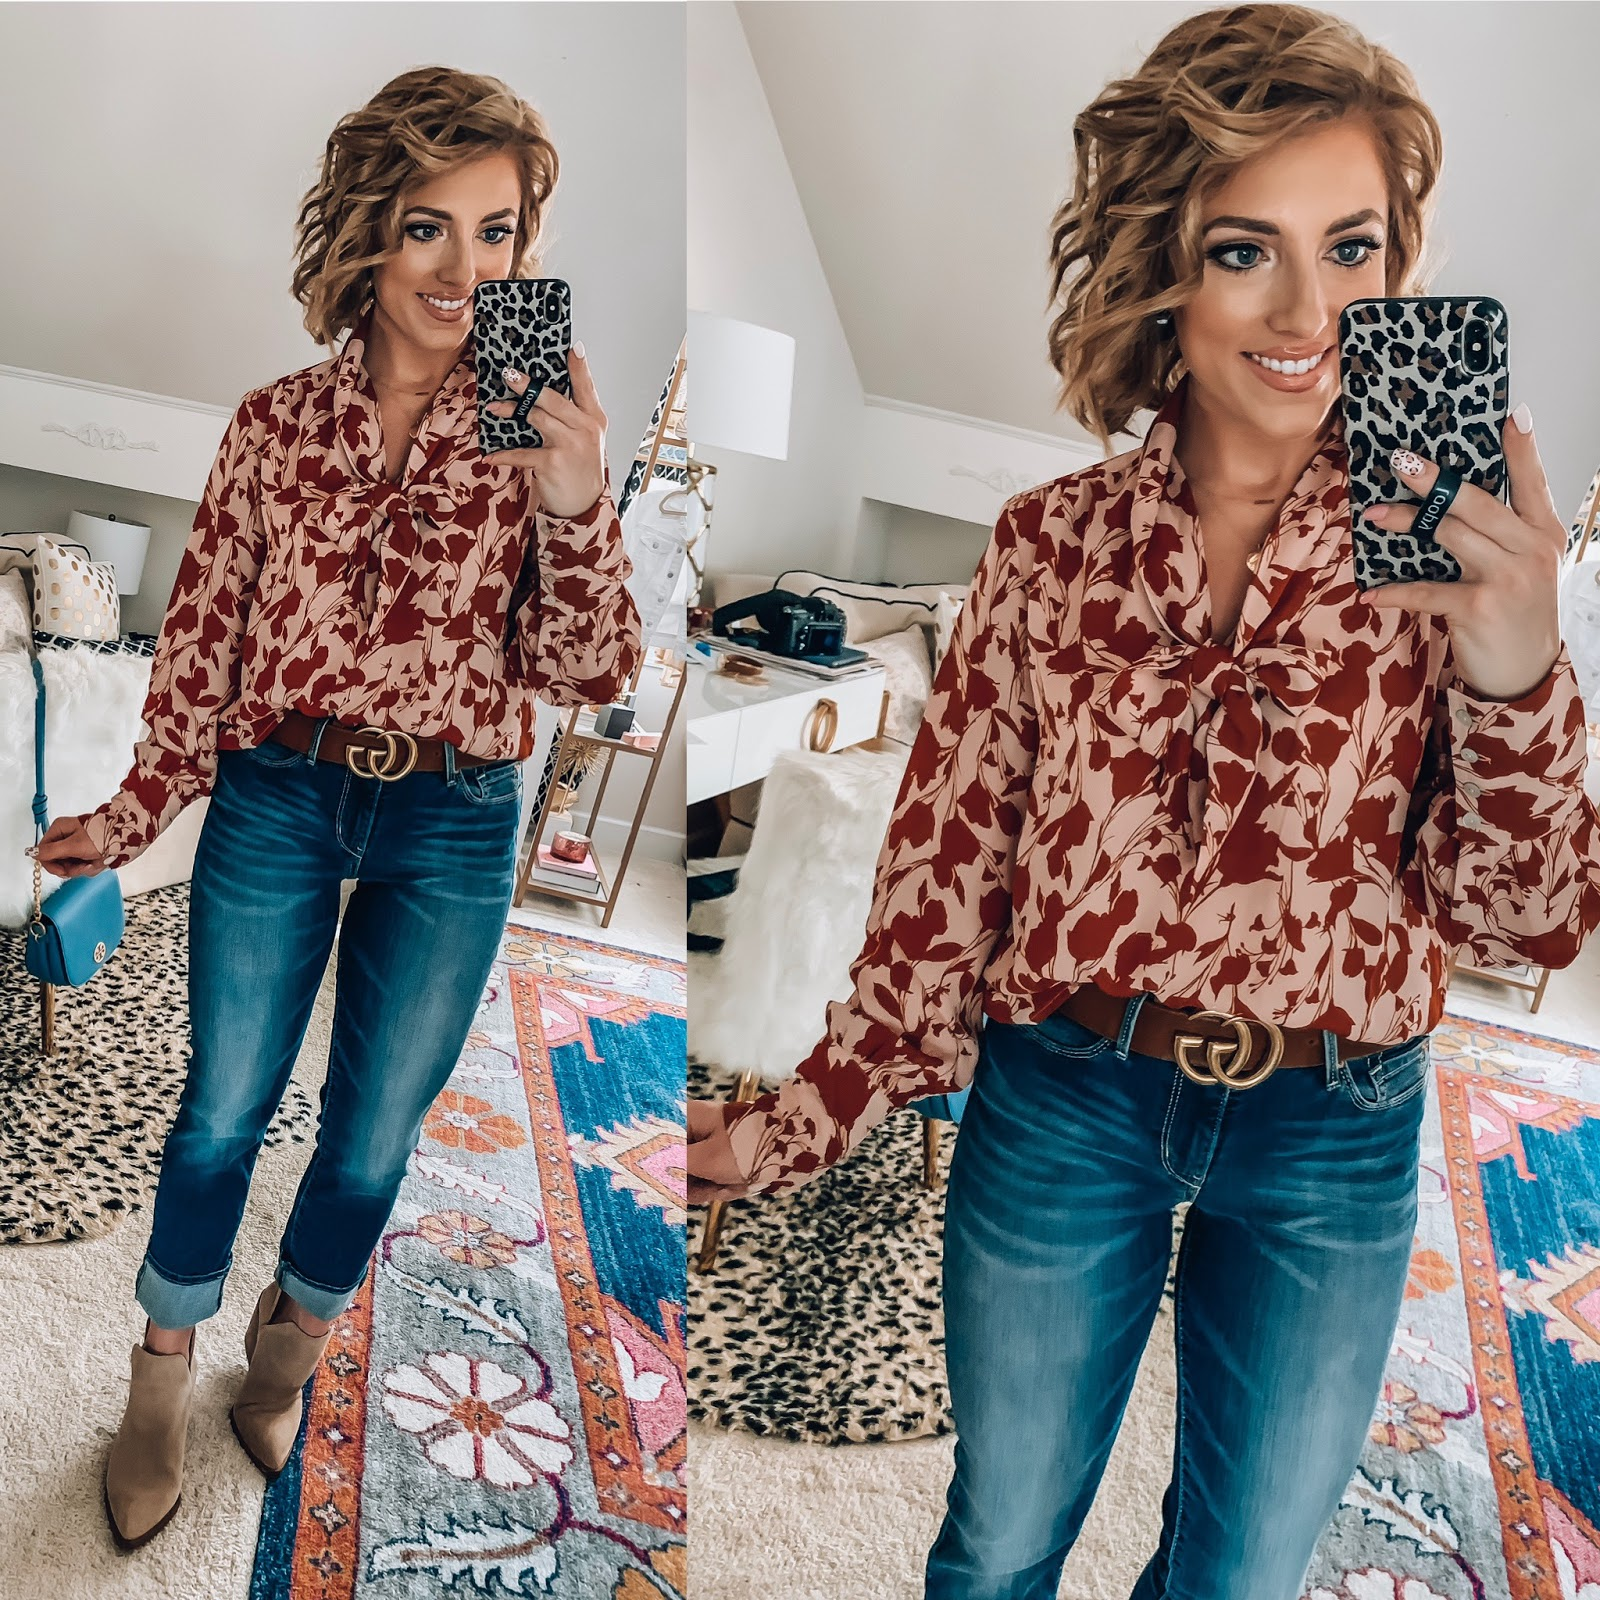 Target Fall Finds: Part One - Under $30 Blush/Rust Floral Blouse + Under $30 Jeans - Something Delightful Blog